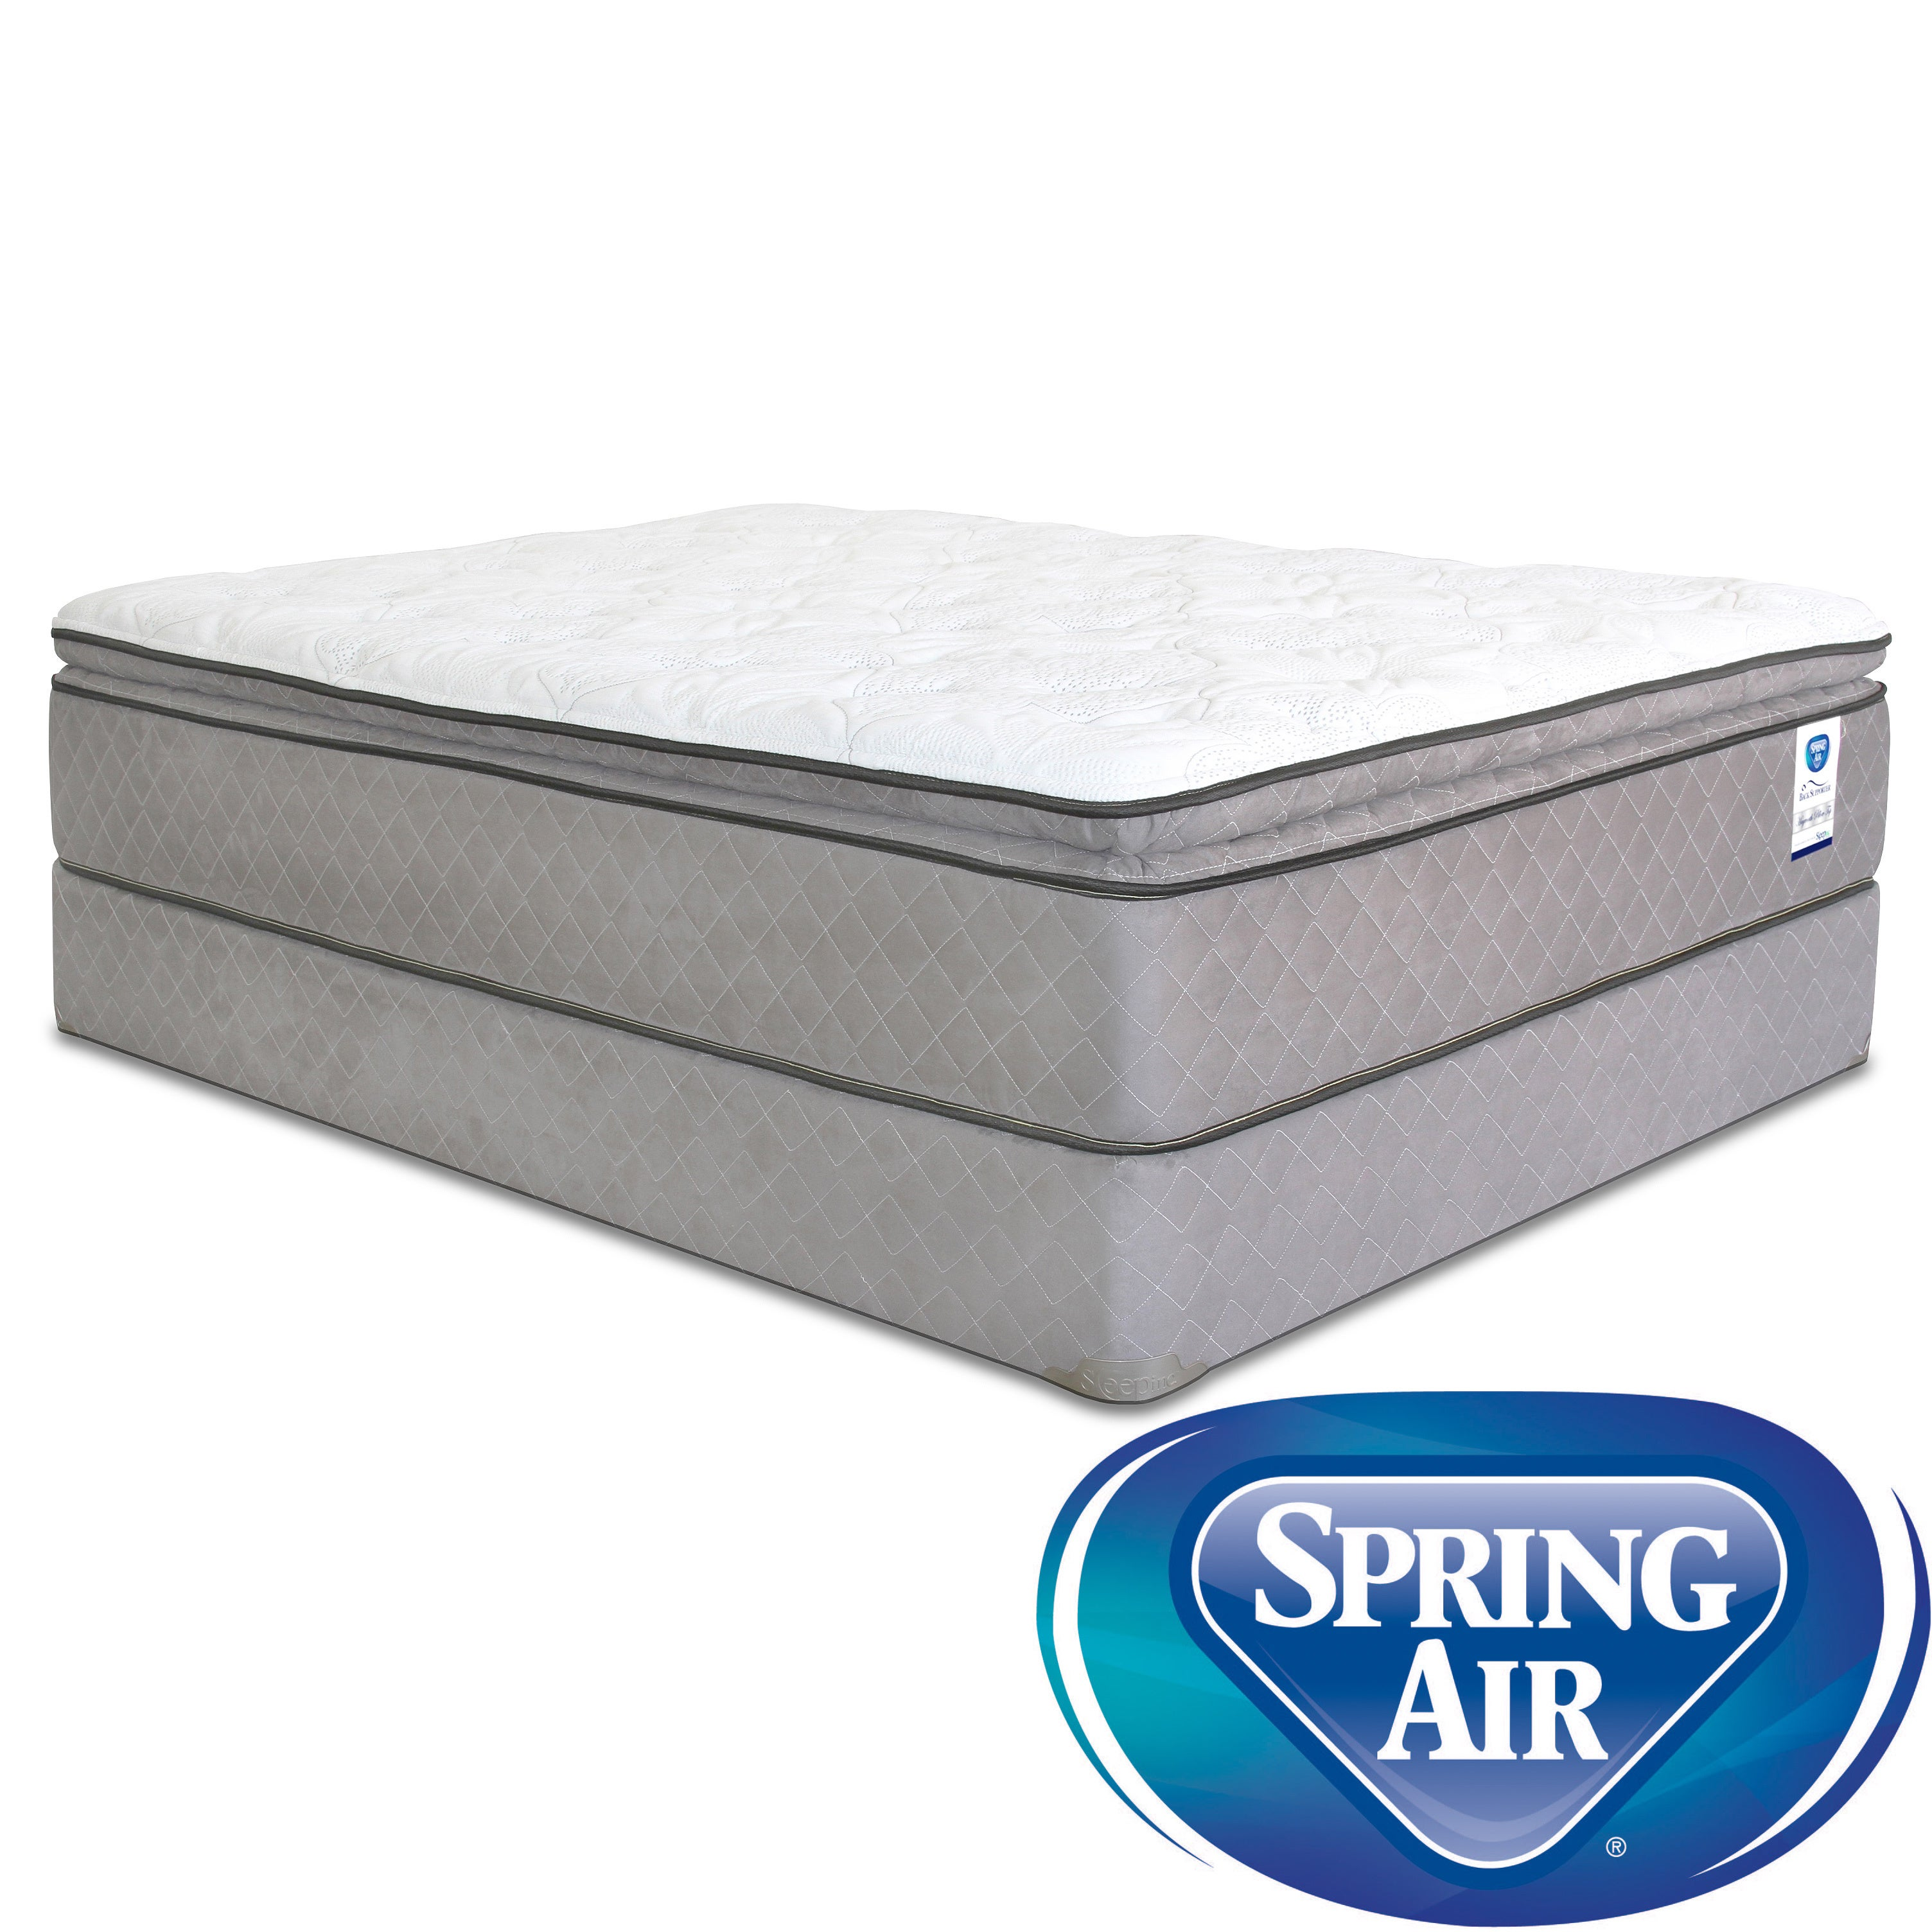 Spring Air Back Supporter Hayworth Pillow Top Queen Size Mattress